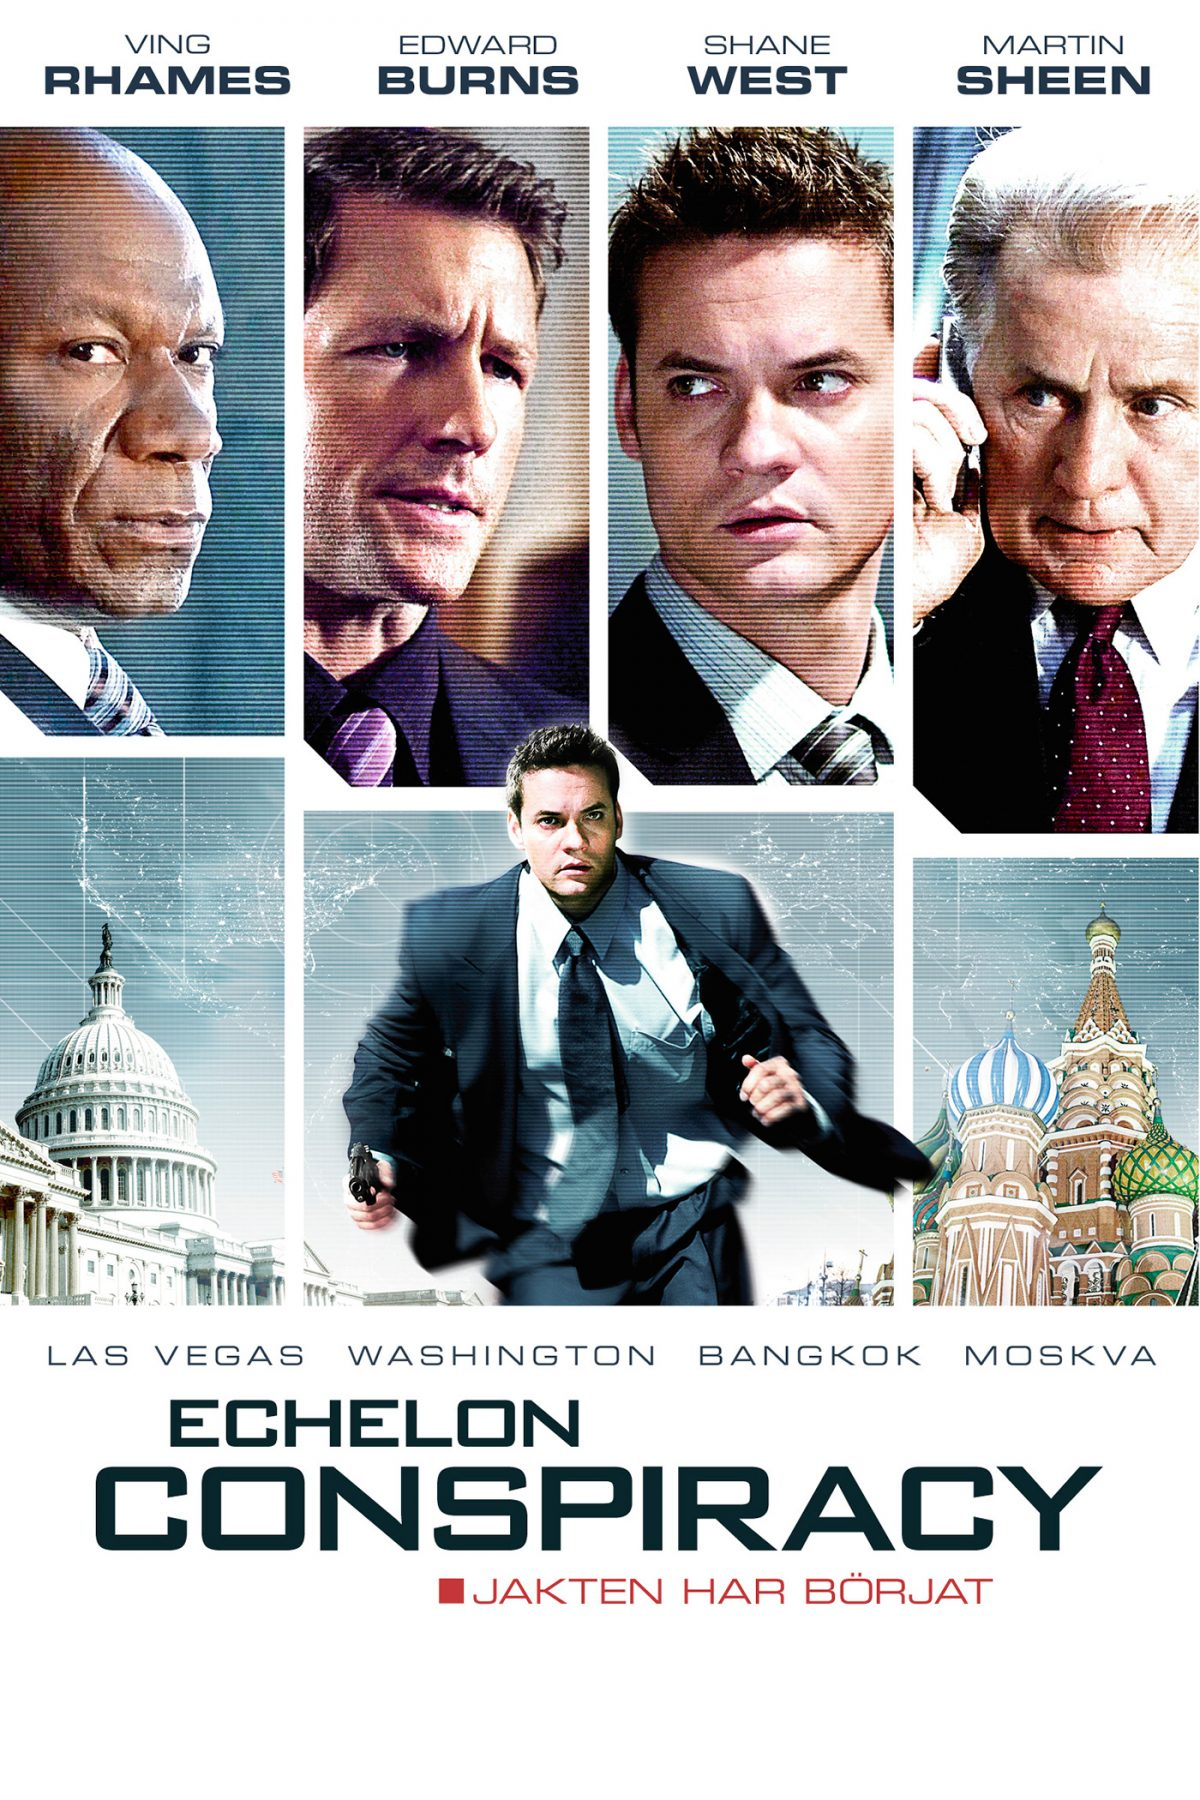 Bank conspiracy movie 2009